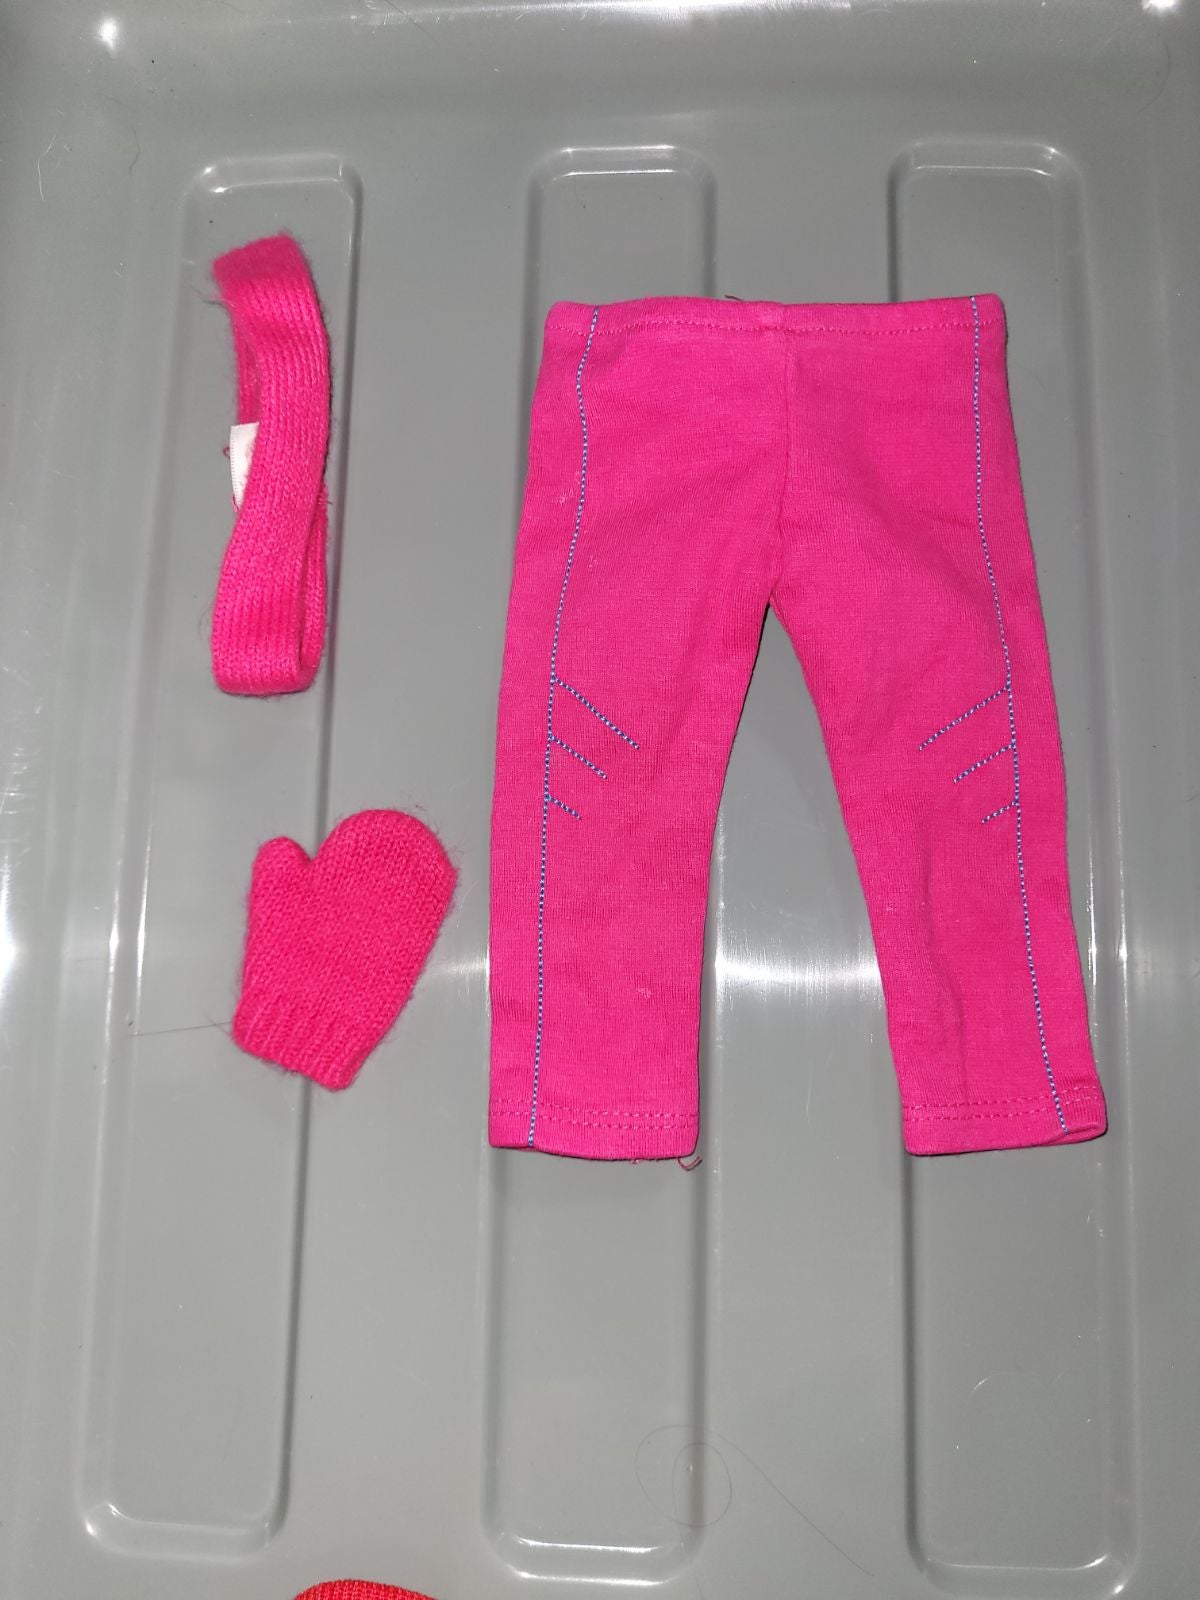 American girl clothes - hit the slopes